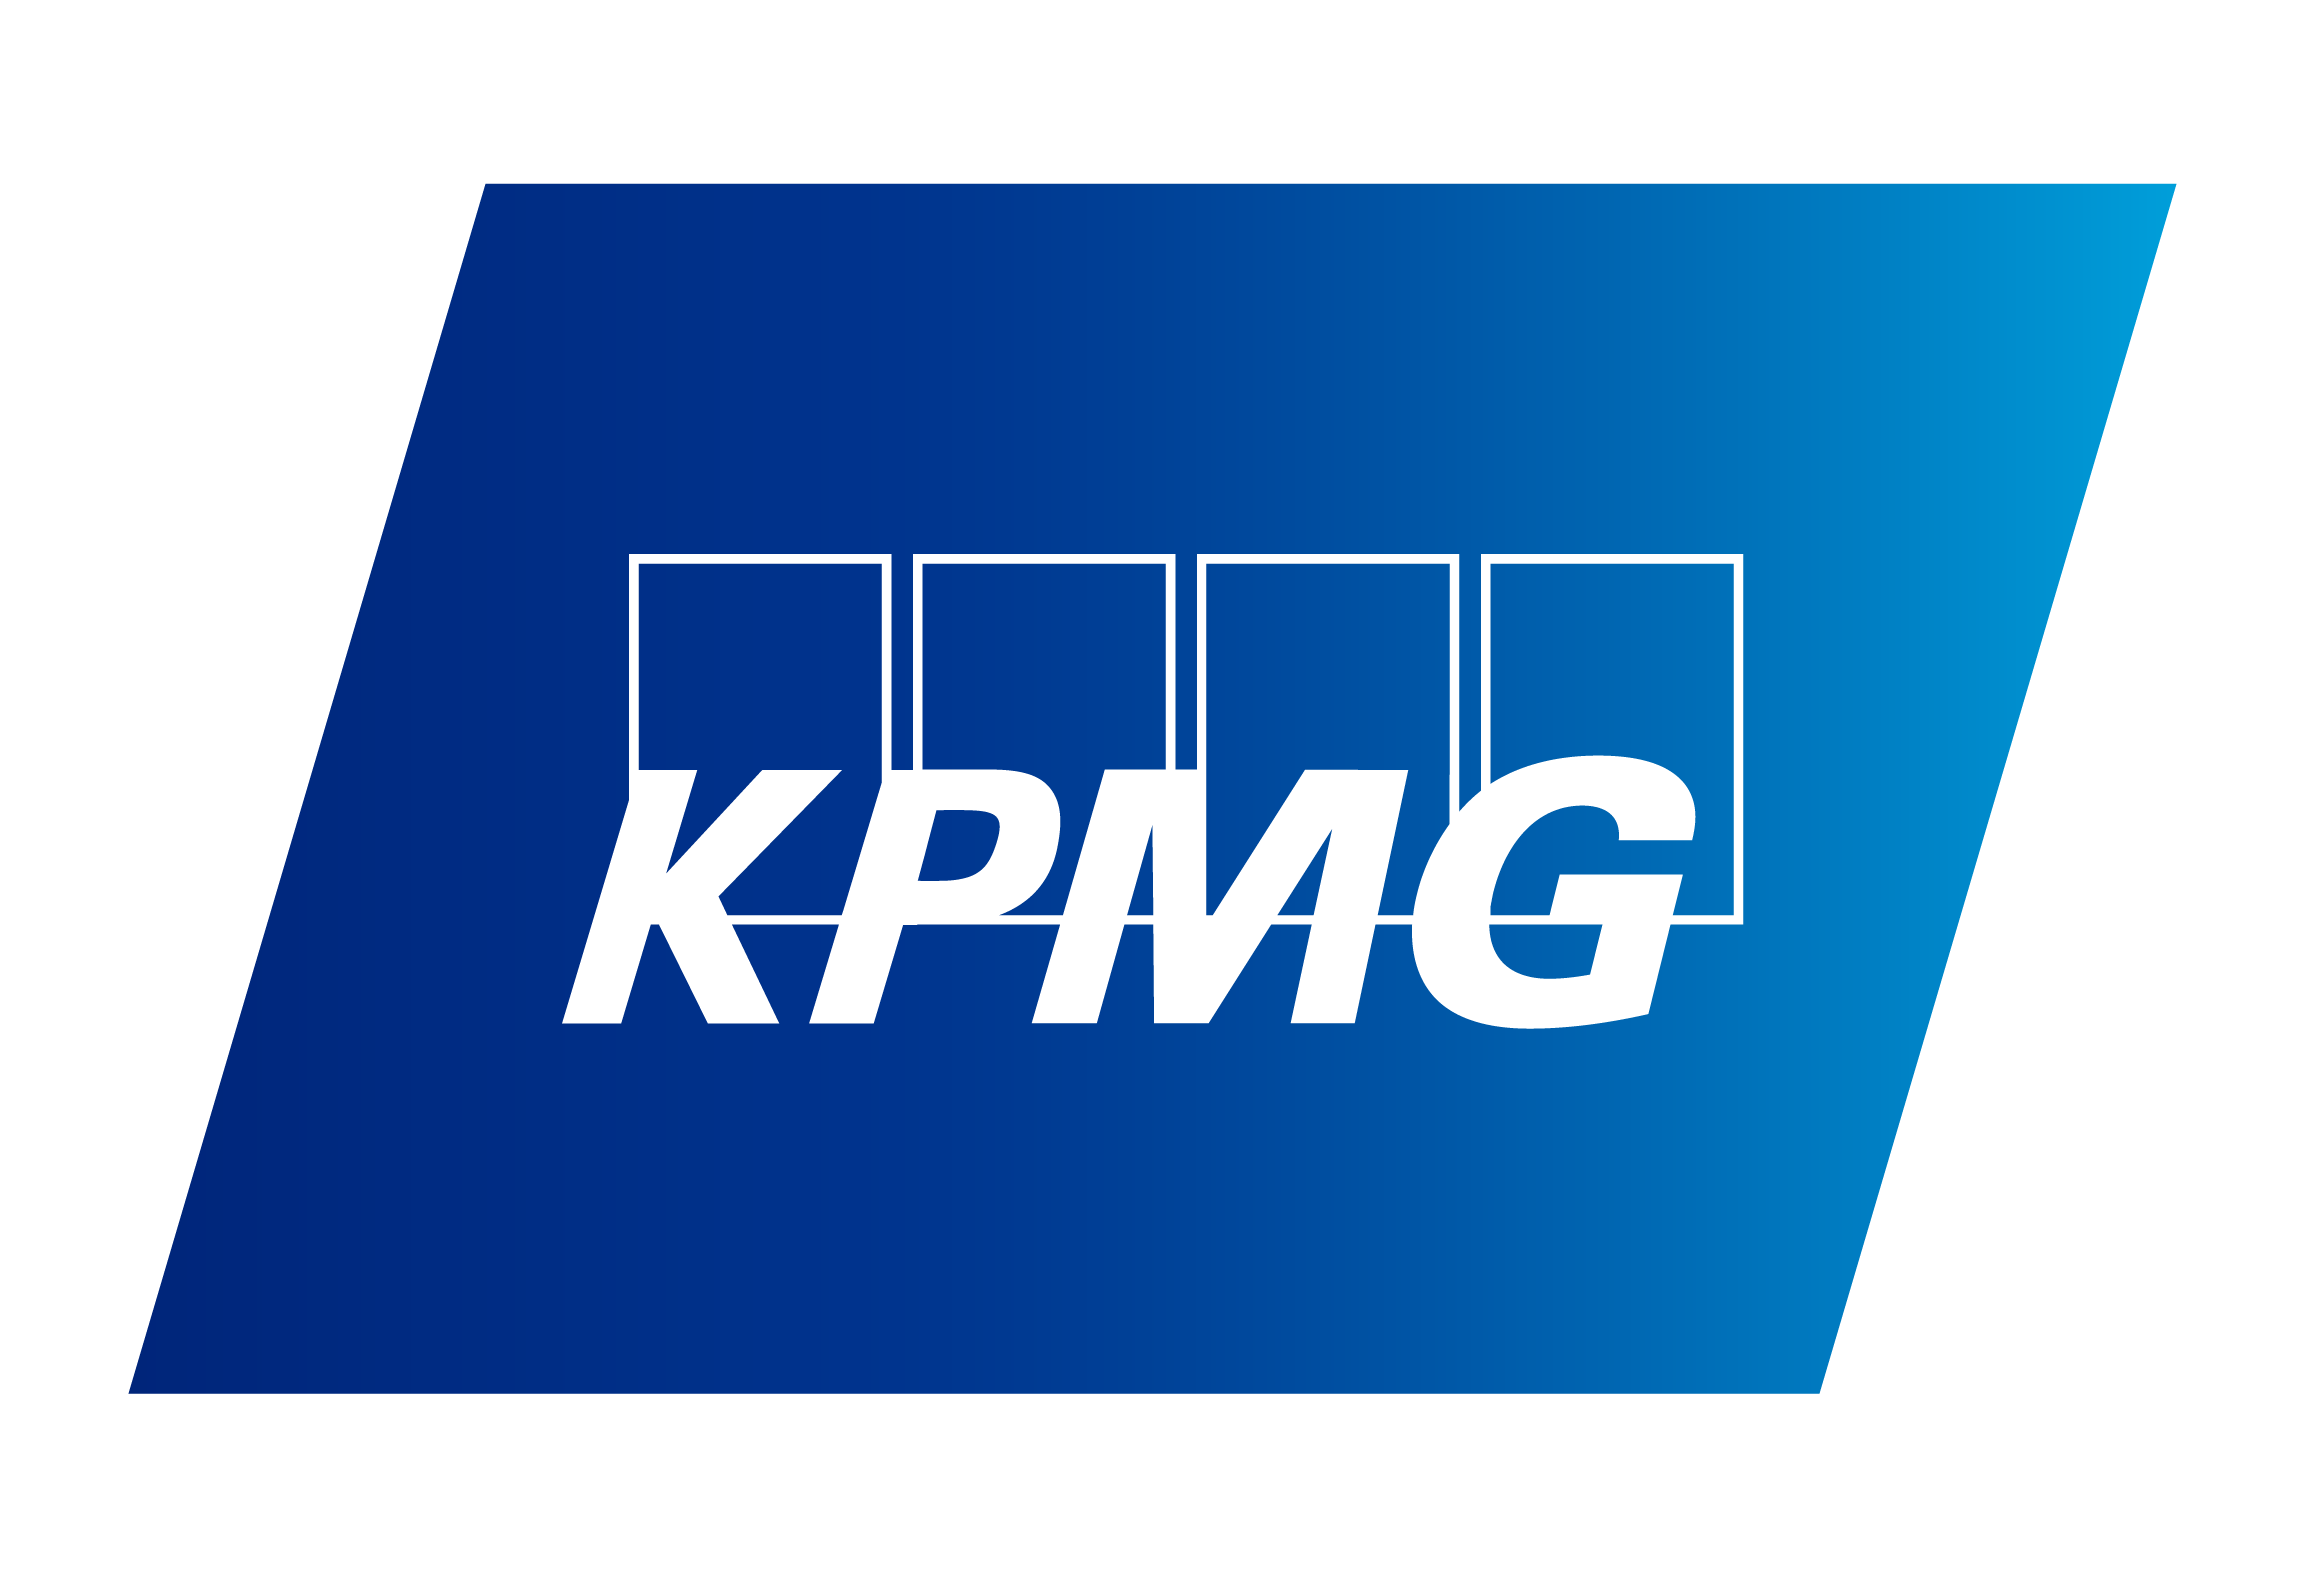 KPMG_Endorsement_RGB.png